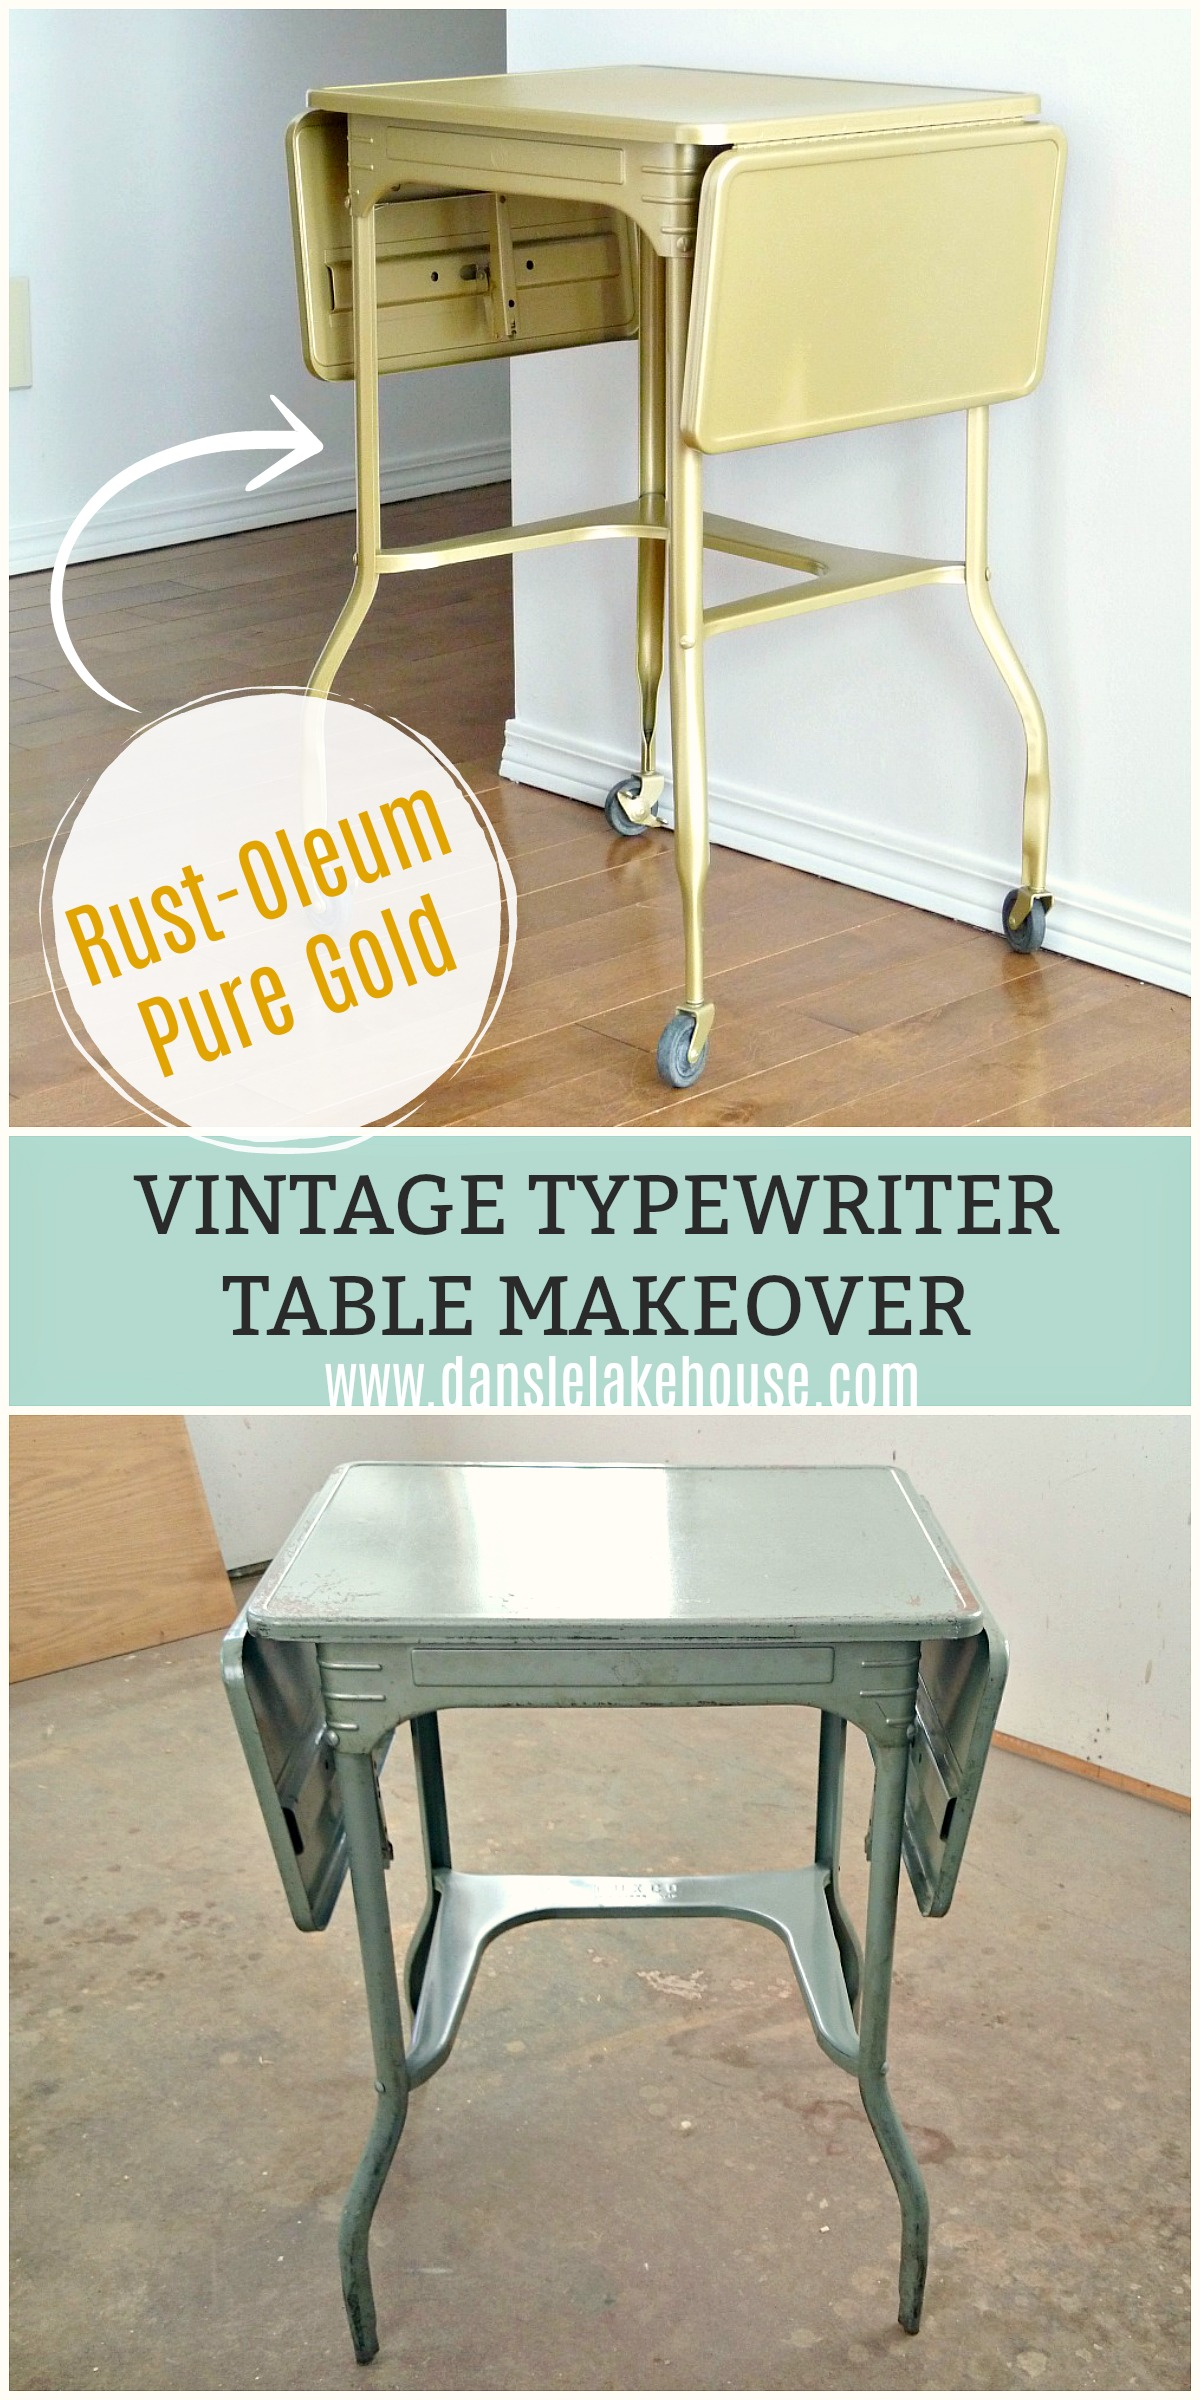 Vintage Typewriter Table Makeover | Rust-Oleum Universal Metallic Pure Gold Spray Paint Review #upcycle #spraypainting #spraypaintmakeover #vintagefurniture #vintage #furnituremakeover